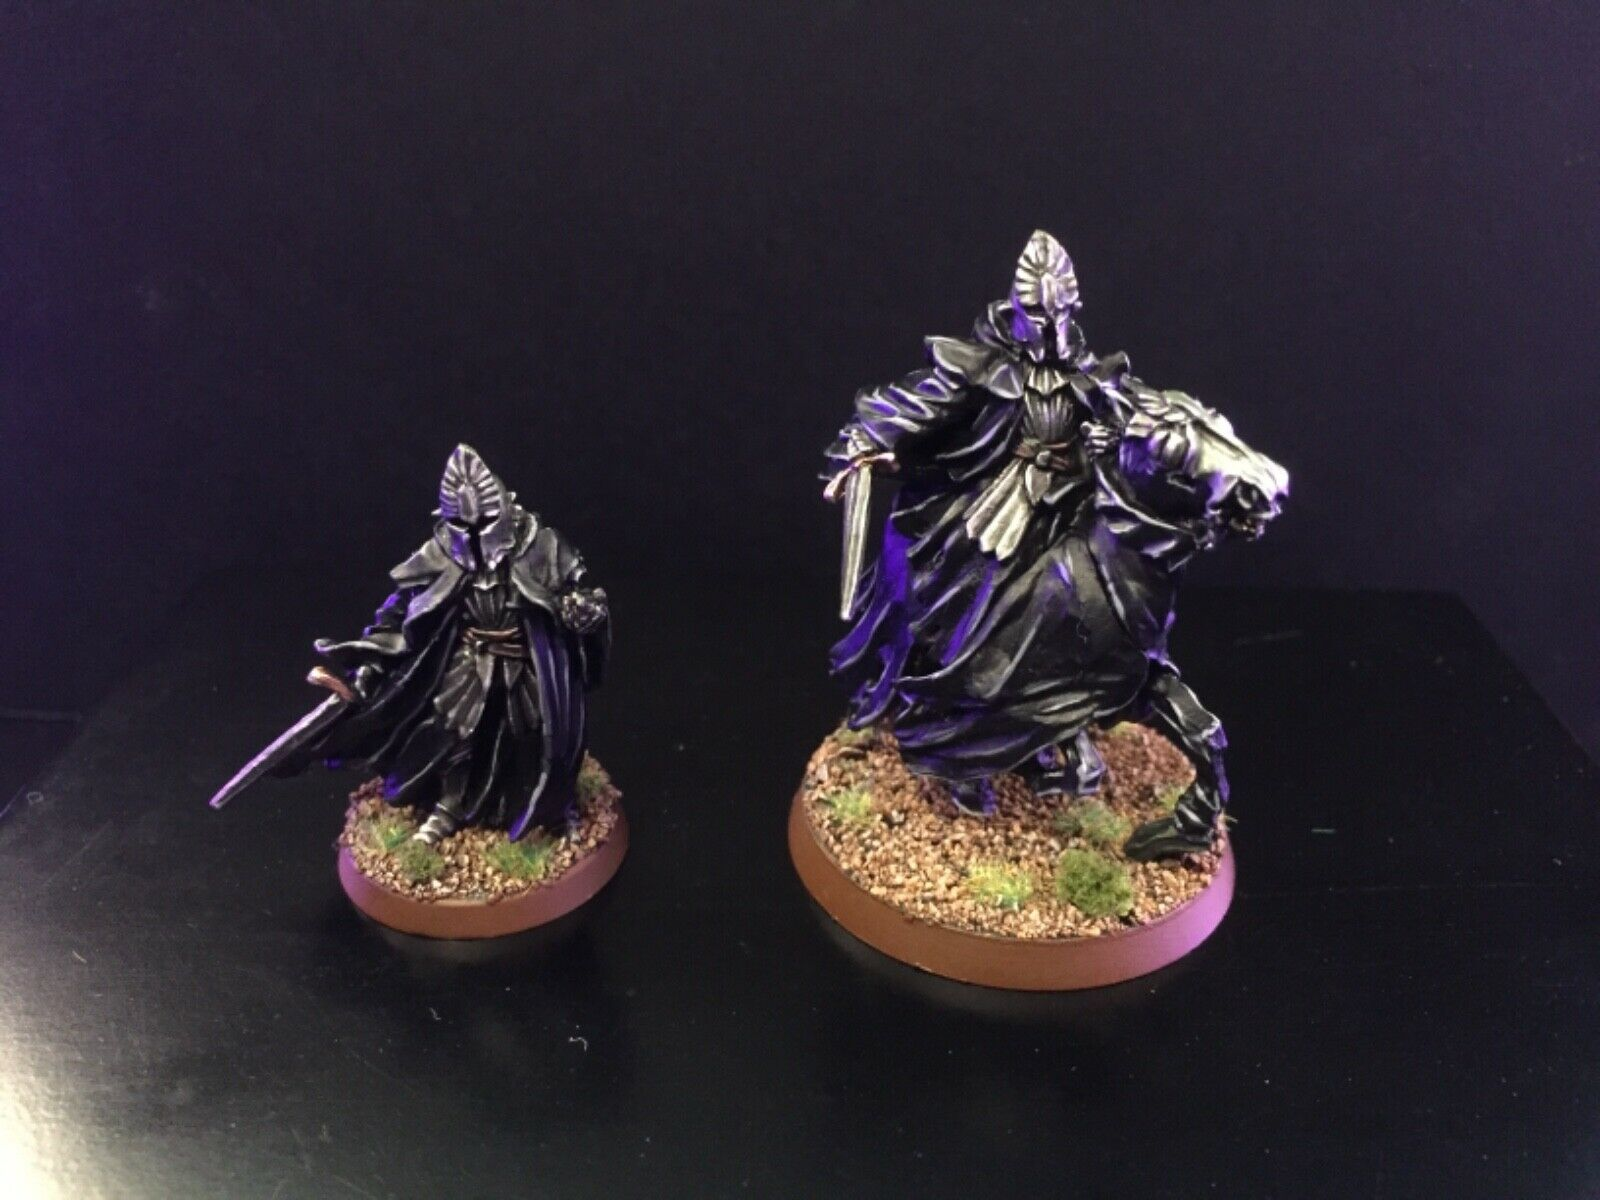 Games workshop lord of the rings ringwraith nazgul knight of umbar